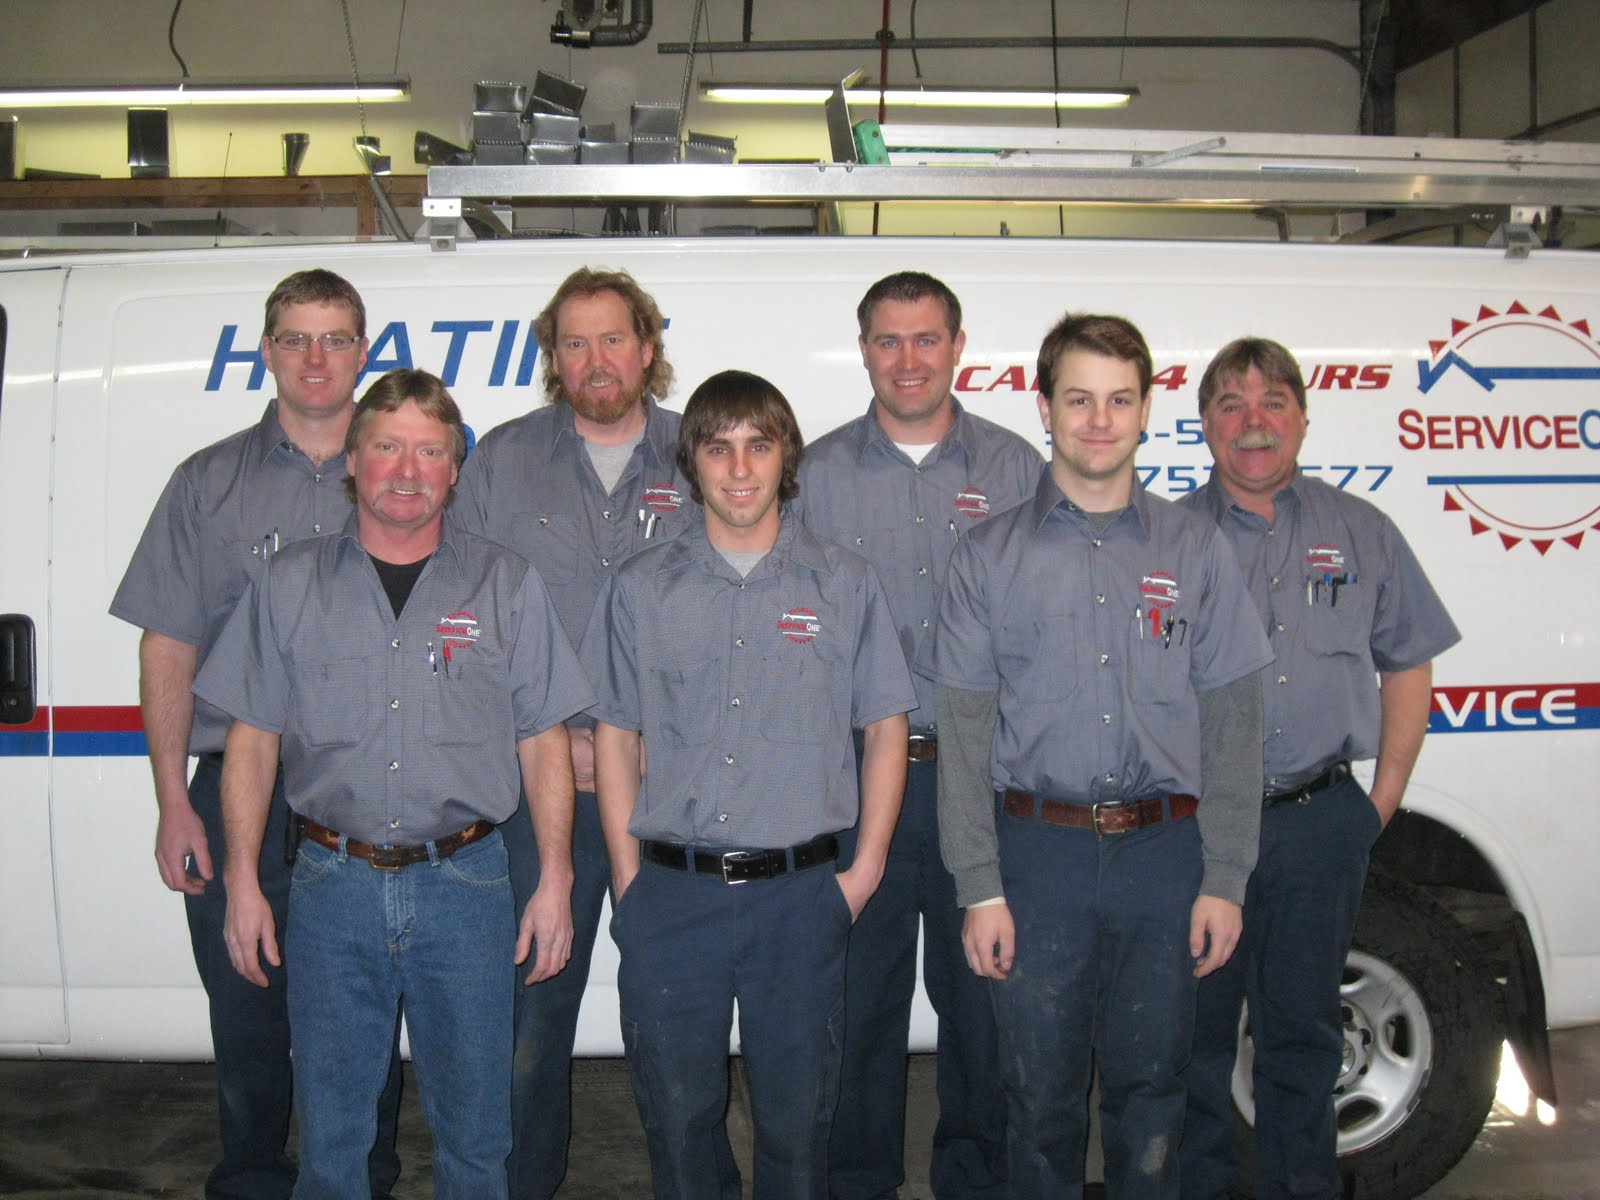 Serviceone Dubuque Hvac And Plumbing Technicians Wanted